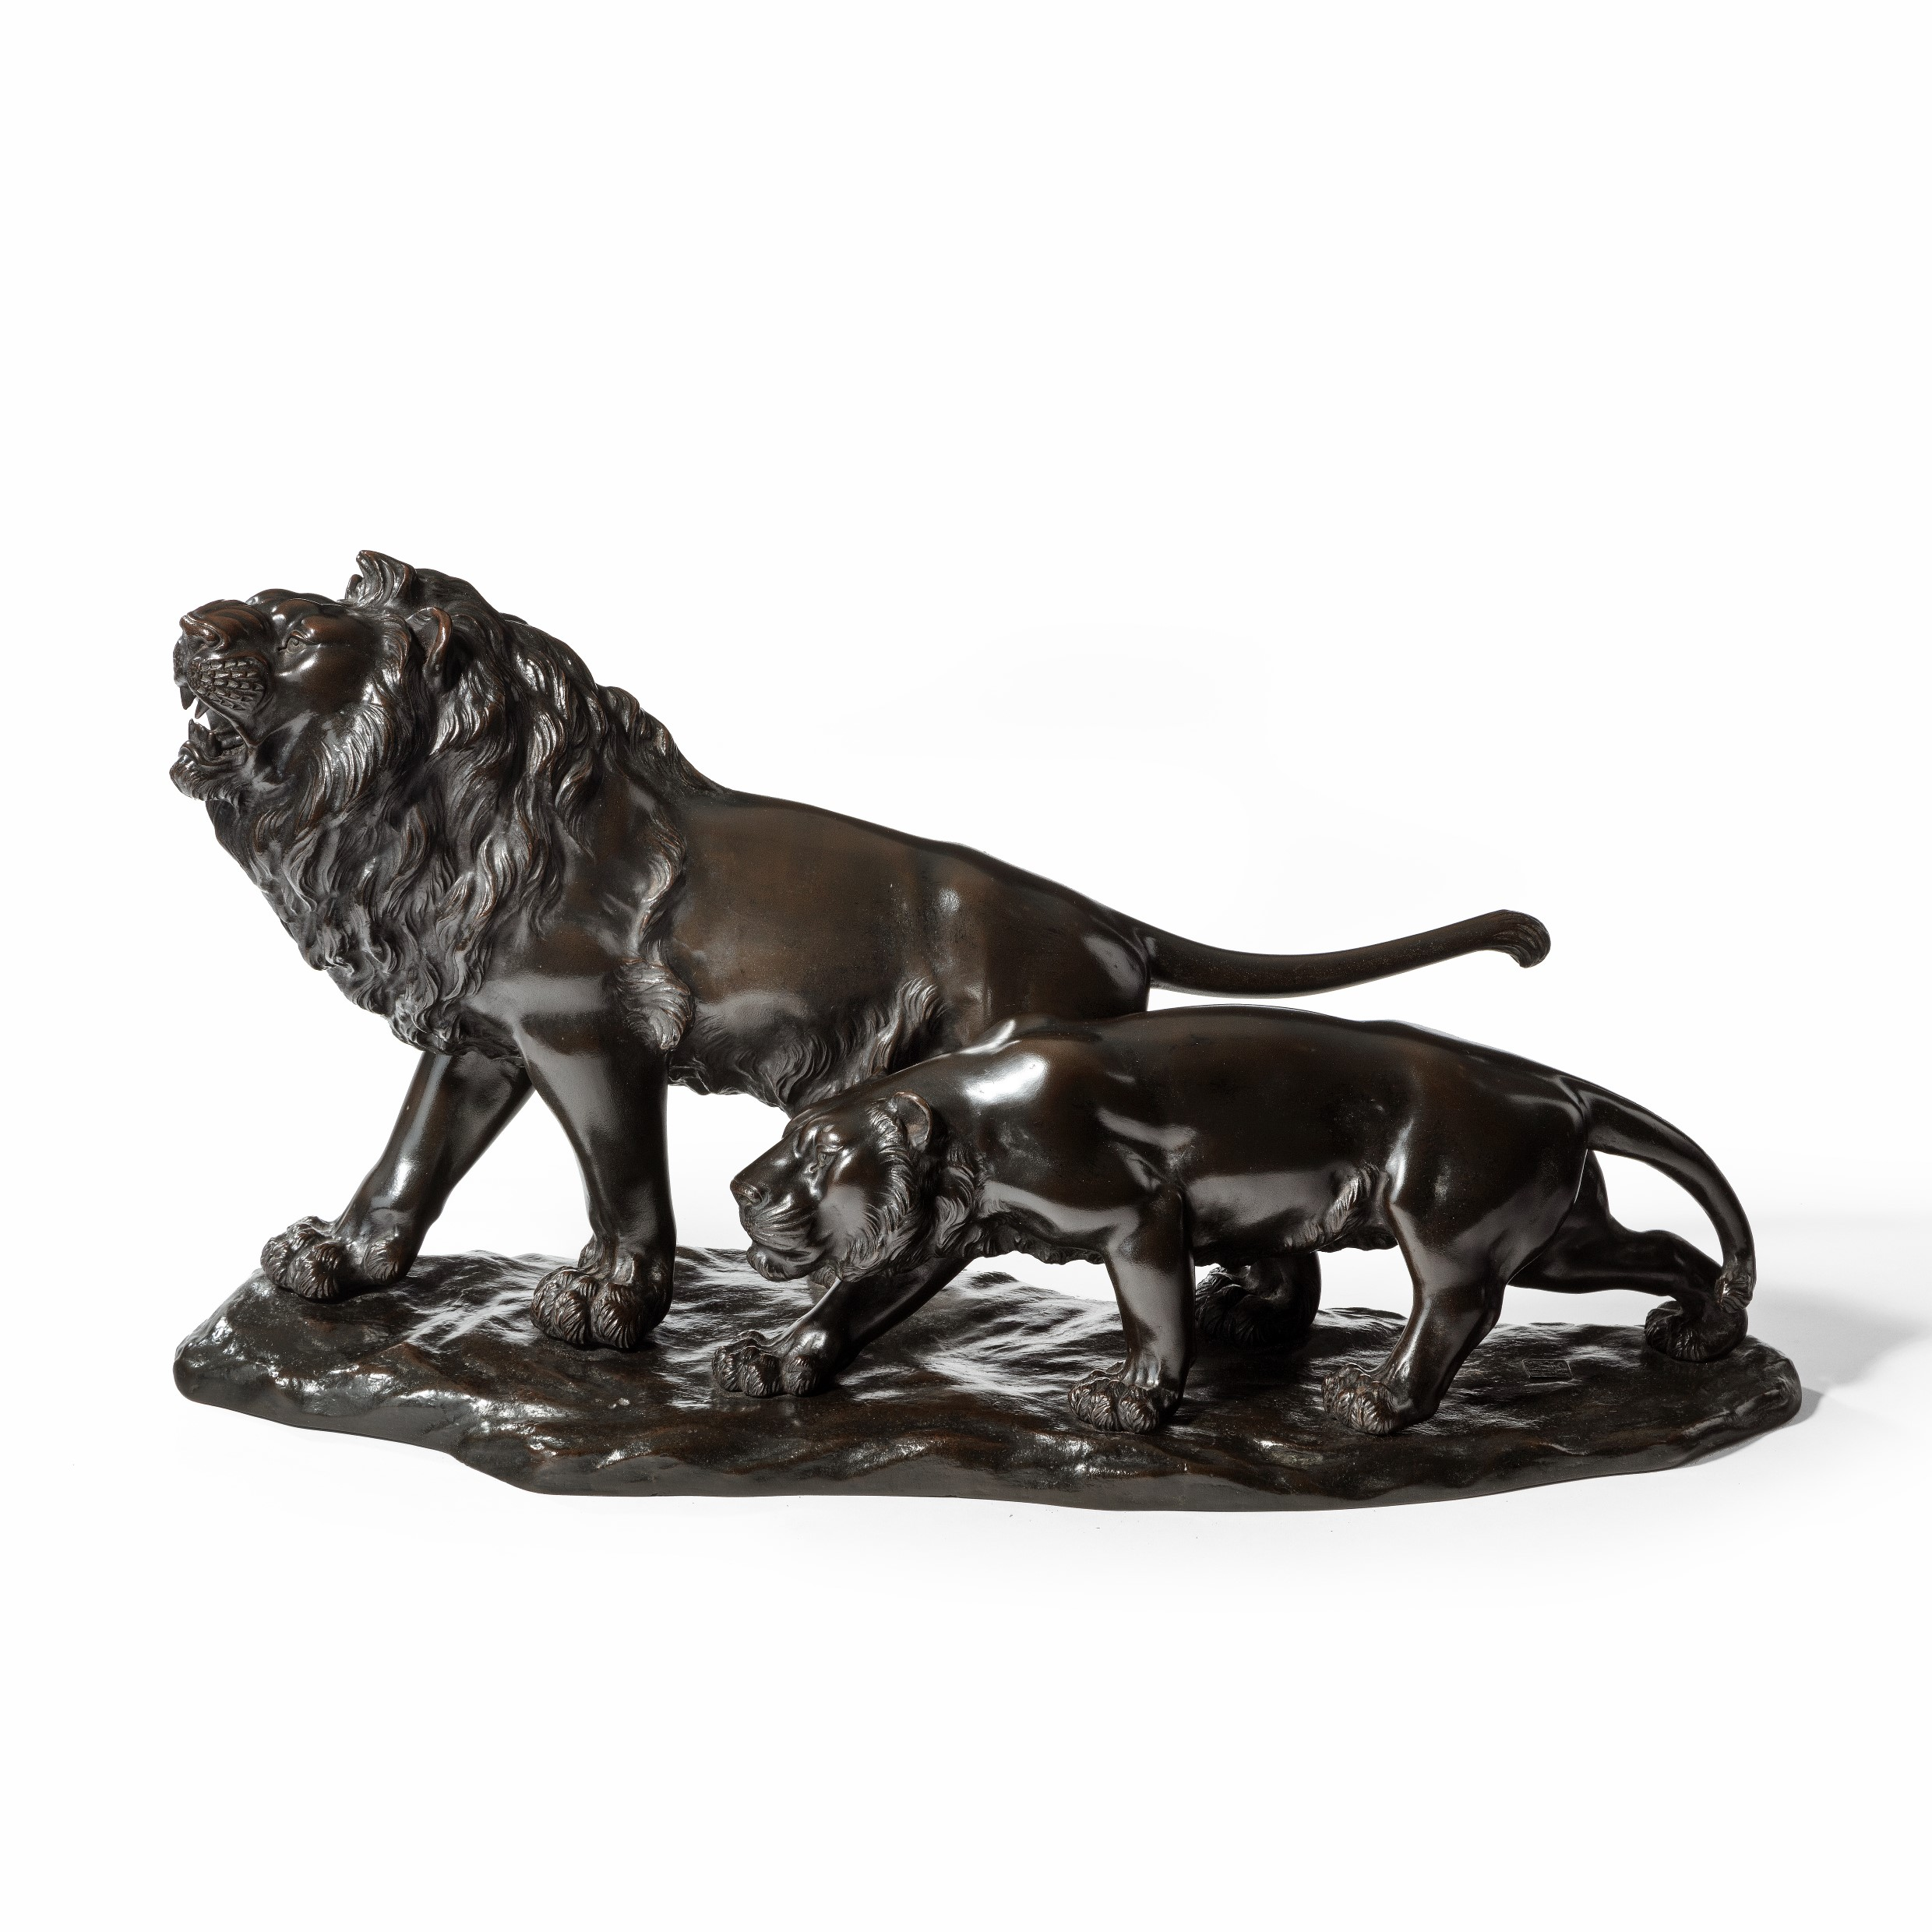 A Meiji period bronze study of a lion and lioness